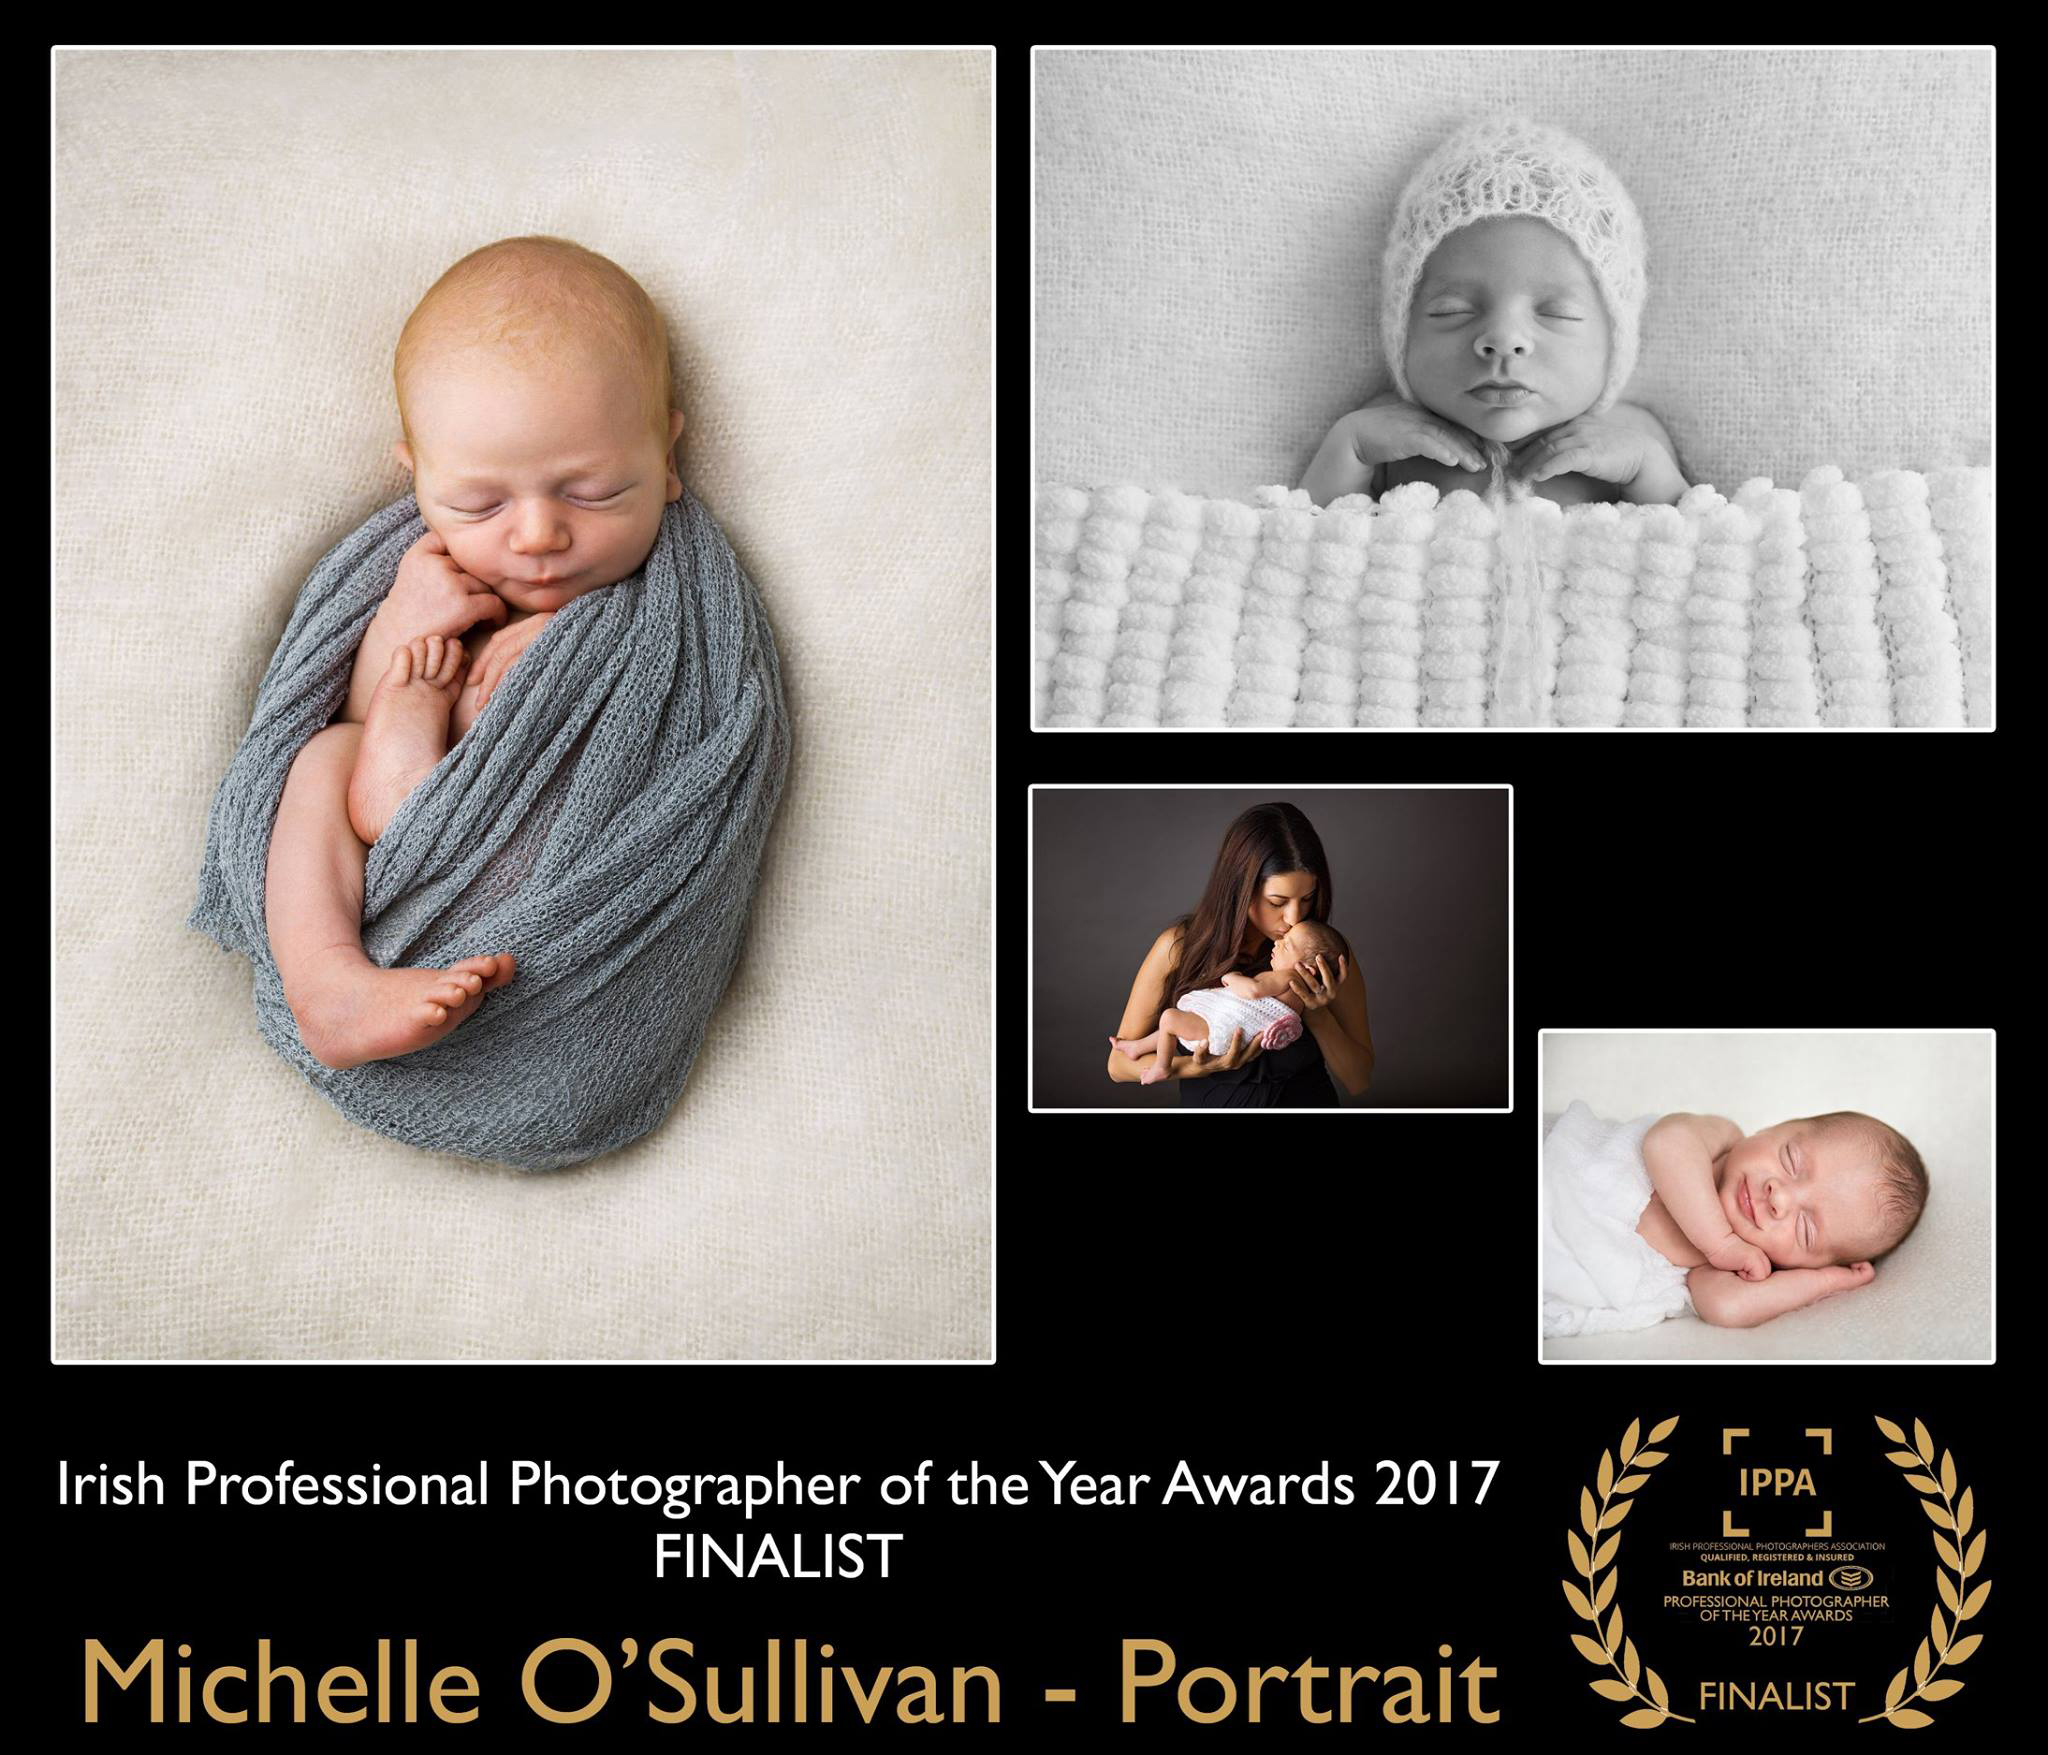 Photographer of the Year Awards 2017